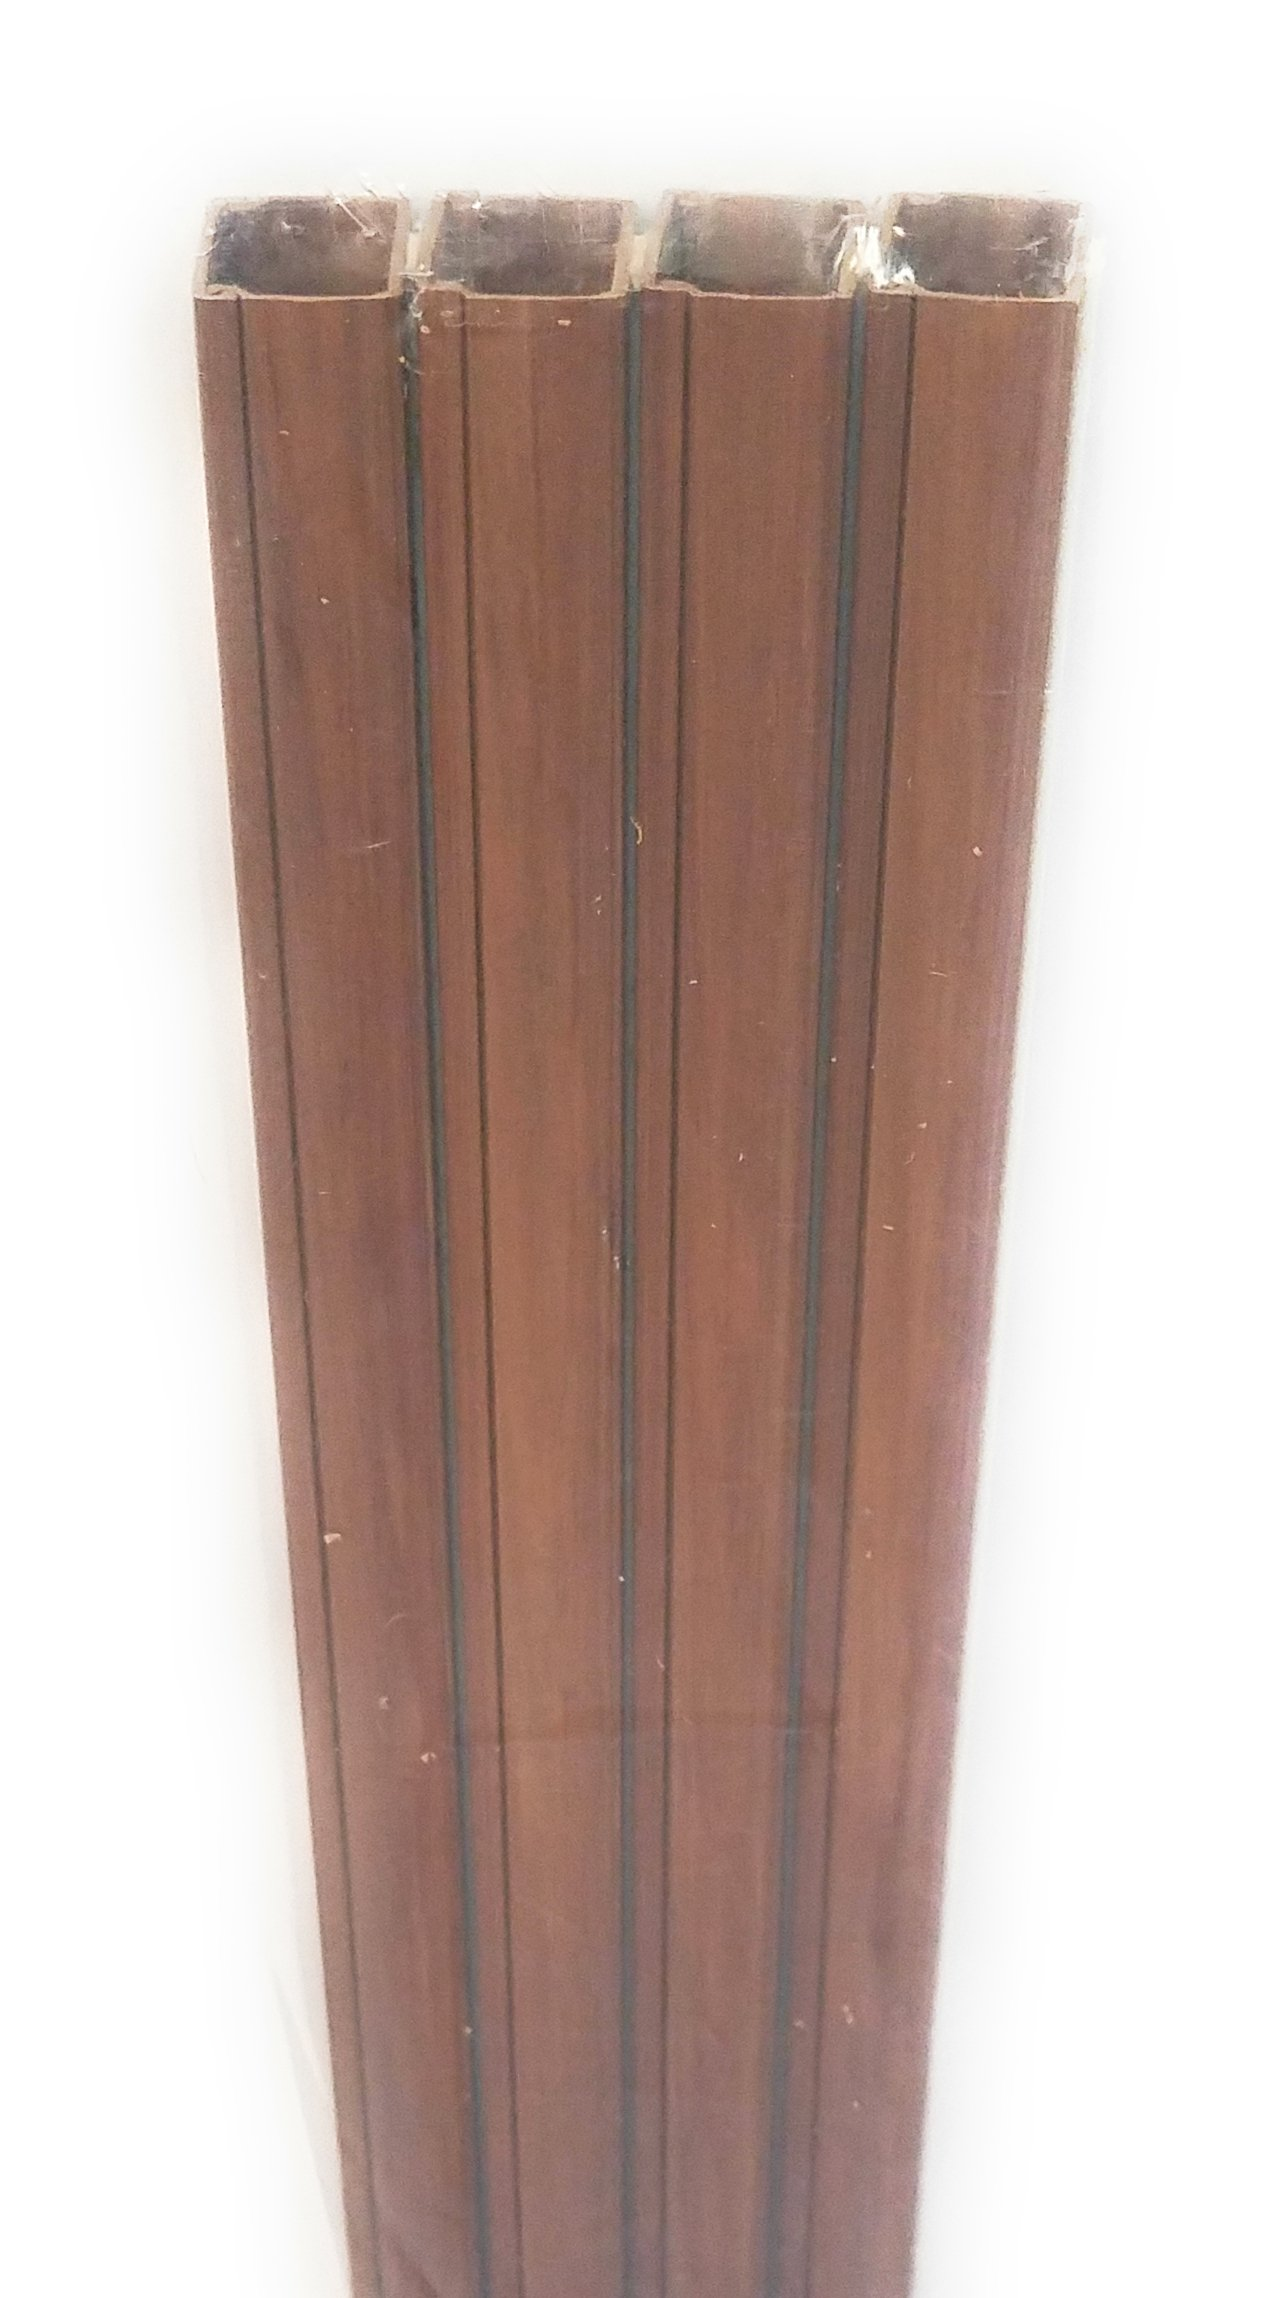 10 ft Trunking Cable Raceway with adhisive Kit 0.63x0.98 Cord Organizing - Brown Wood Look